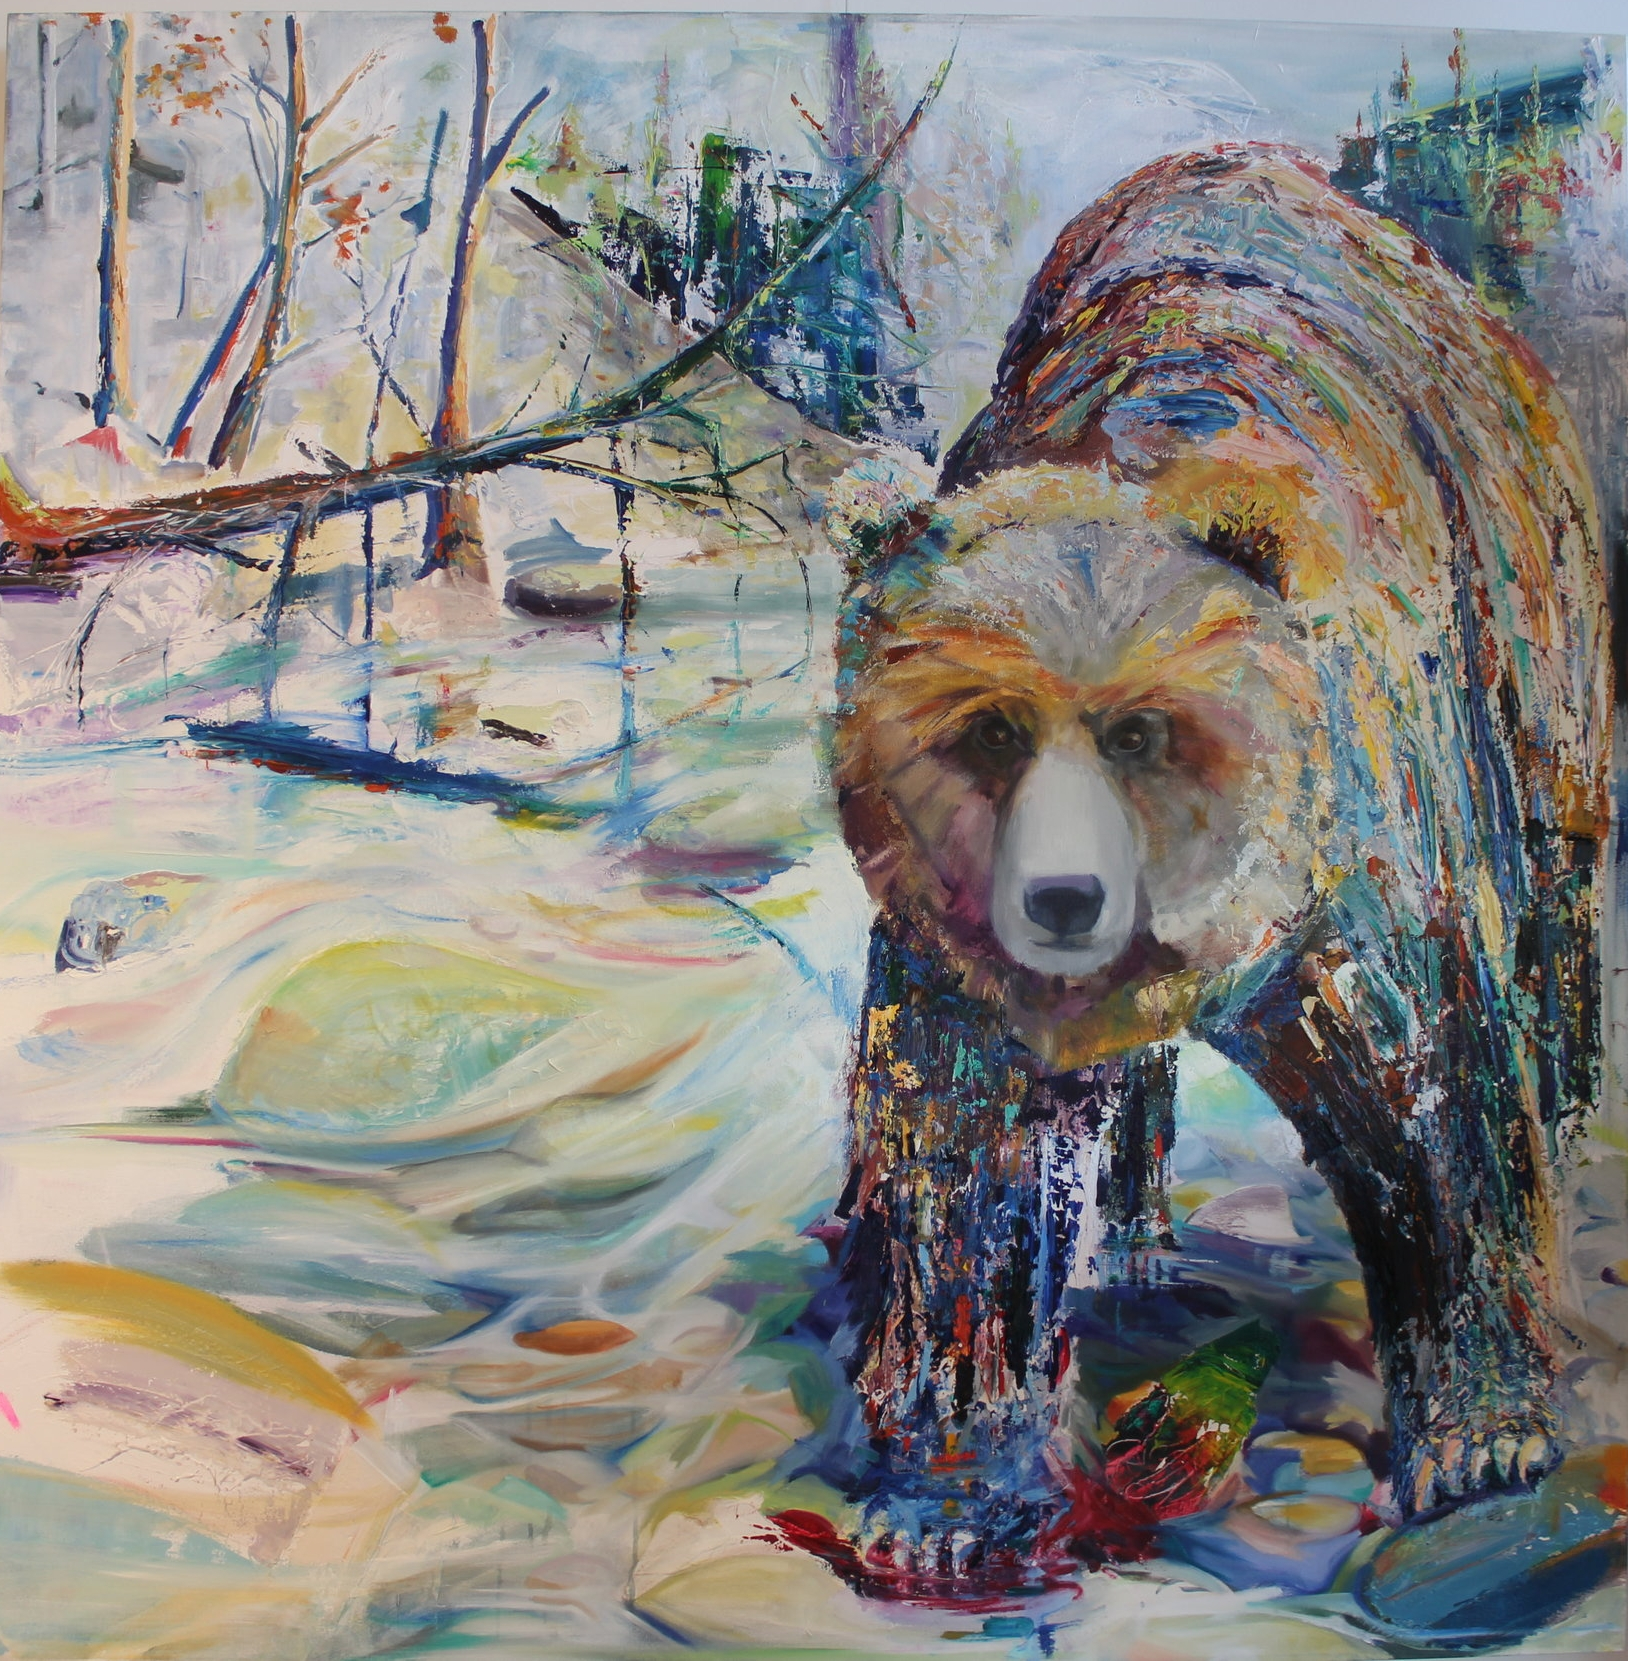 """RIVER BEAR - 48"""" x 48""""Oil on Canvas, Adam MeikleSOLD/PRIVATE COLLECTION"""